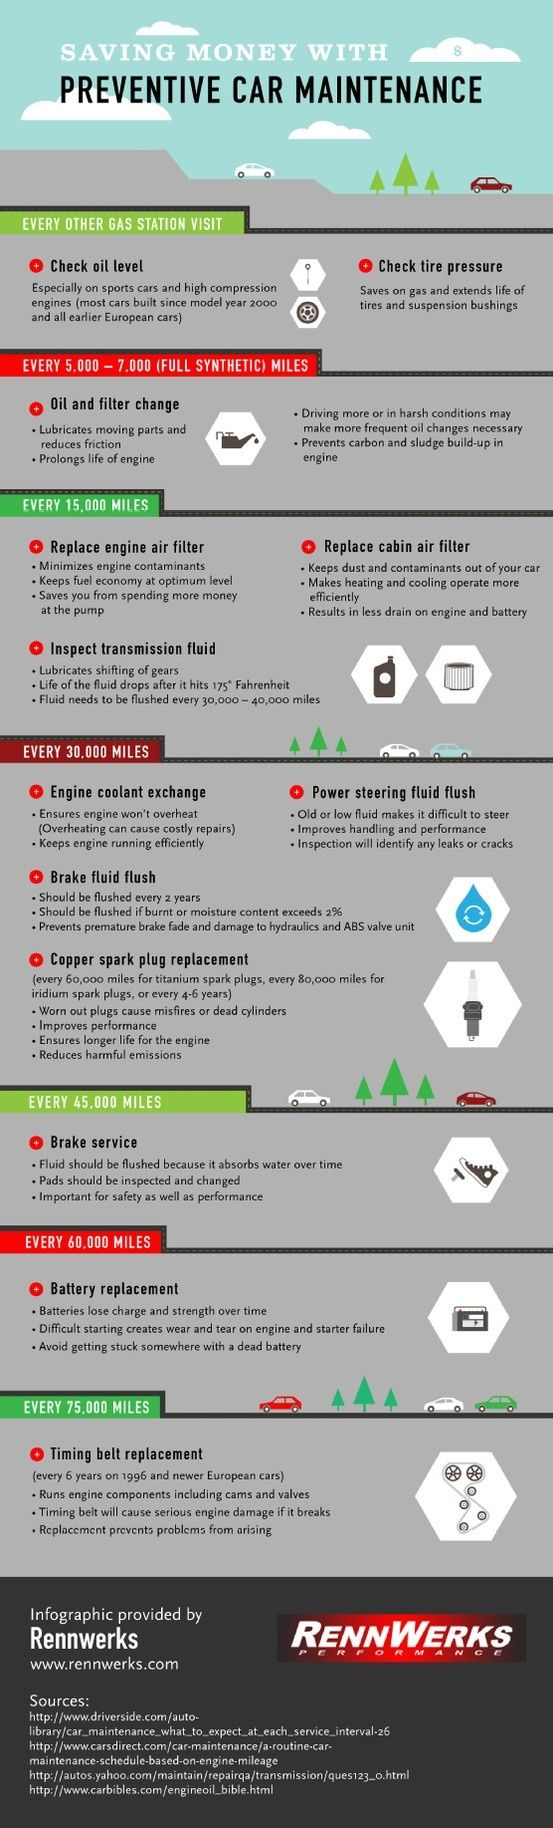 Old or low power steering fluid makes it difficult for a driver to steer his vehicle. Flushing this fluid every 30,000 miles improves handling and performance! Get more maintenance tips on this infographic from an auto repair specialist in San Jose.